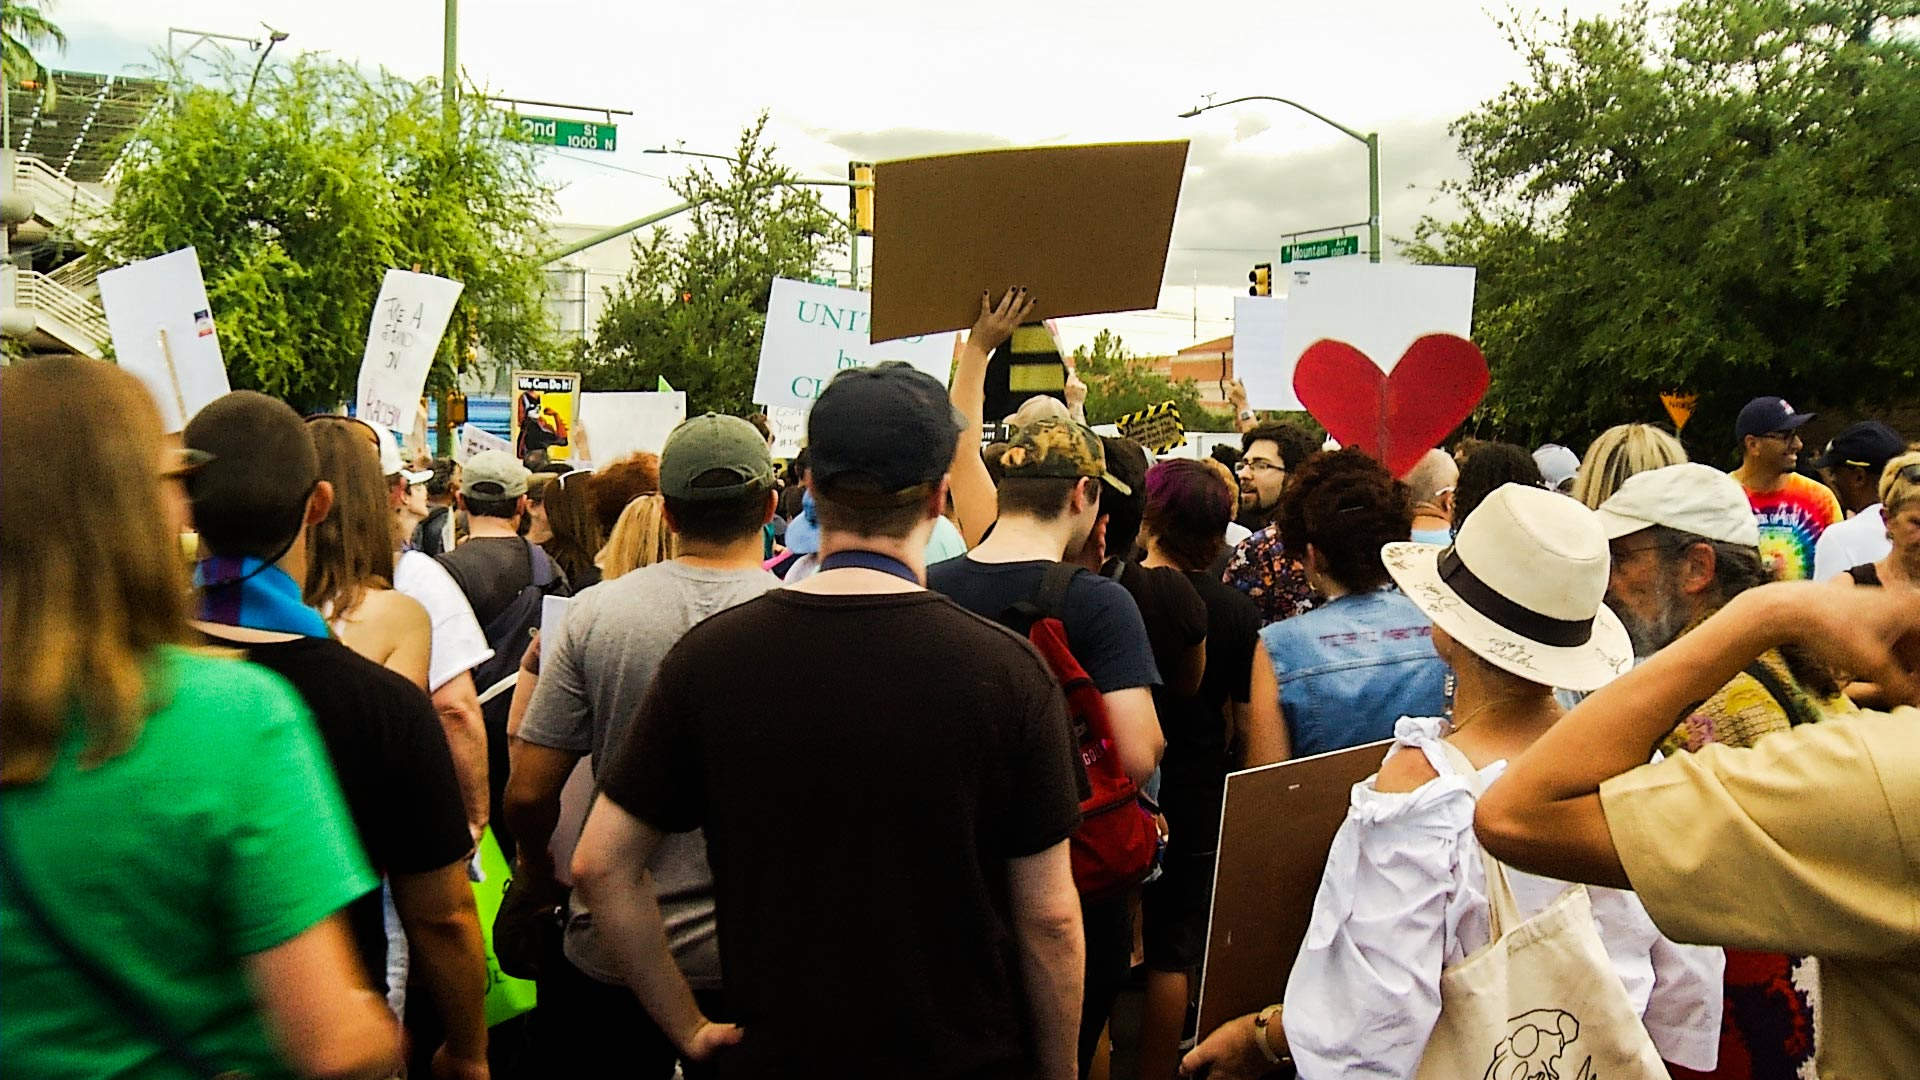 More than 2,000 people marched in Tucson Sunday in reaction to violent events at a white nationalist rally in Charlottesville, Virgina.